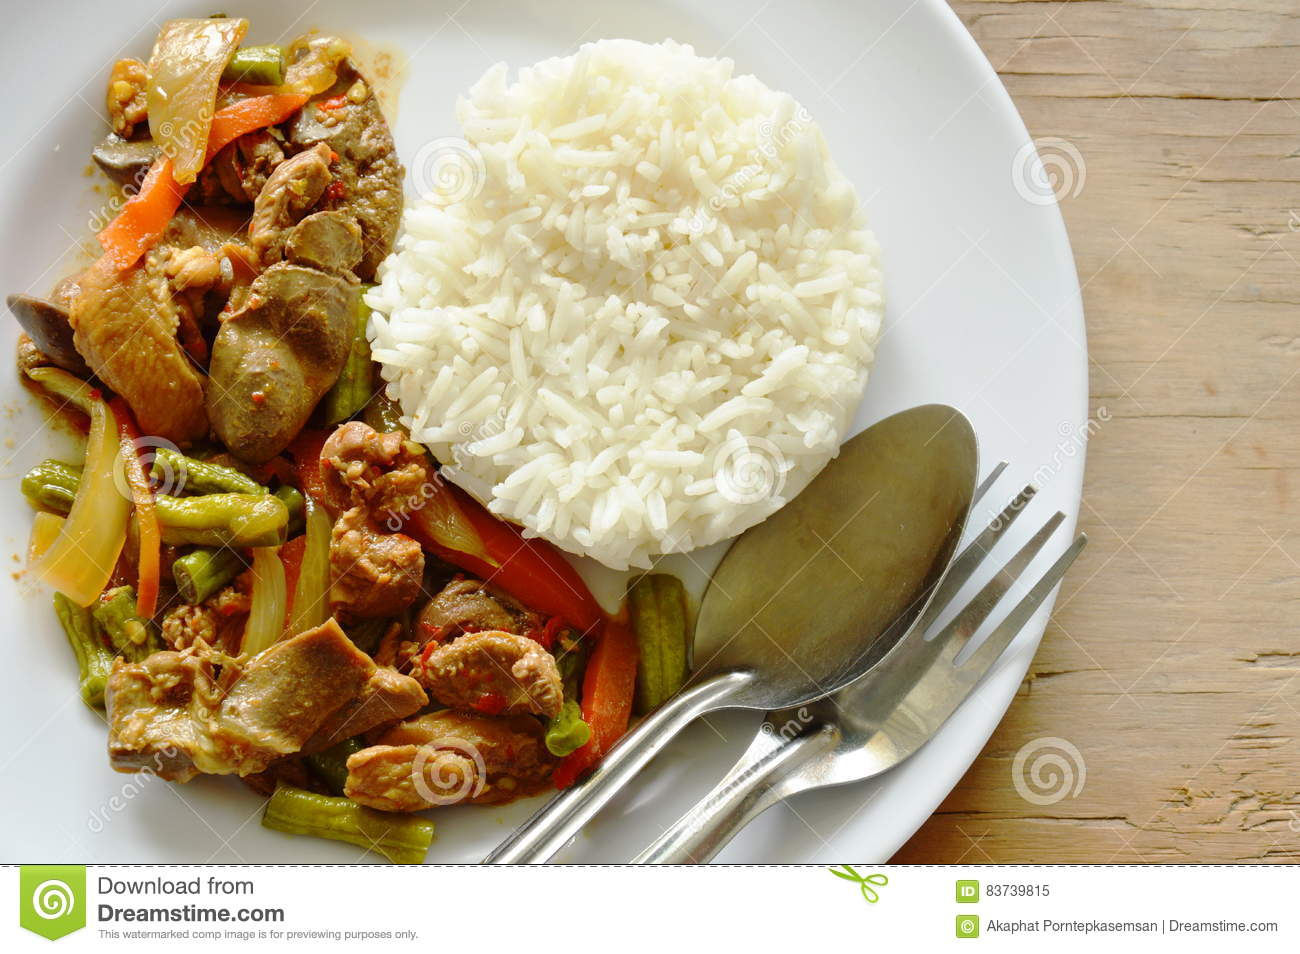 Stir fried chicken and mixed entrails with sweet chili eat couple with rice on plate